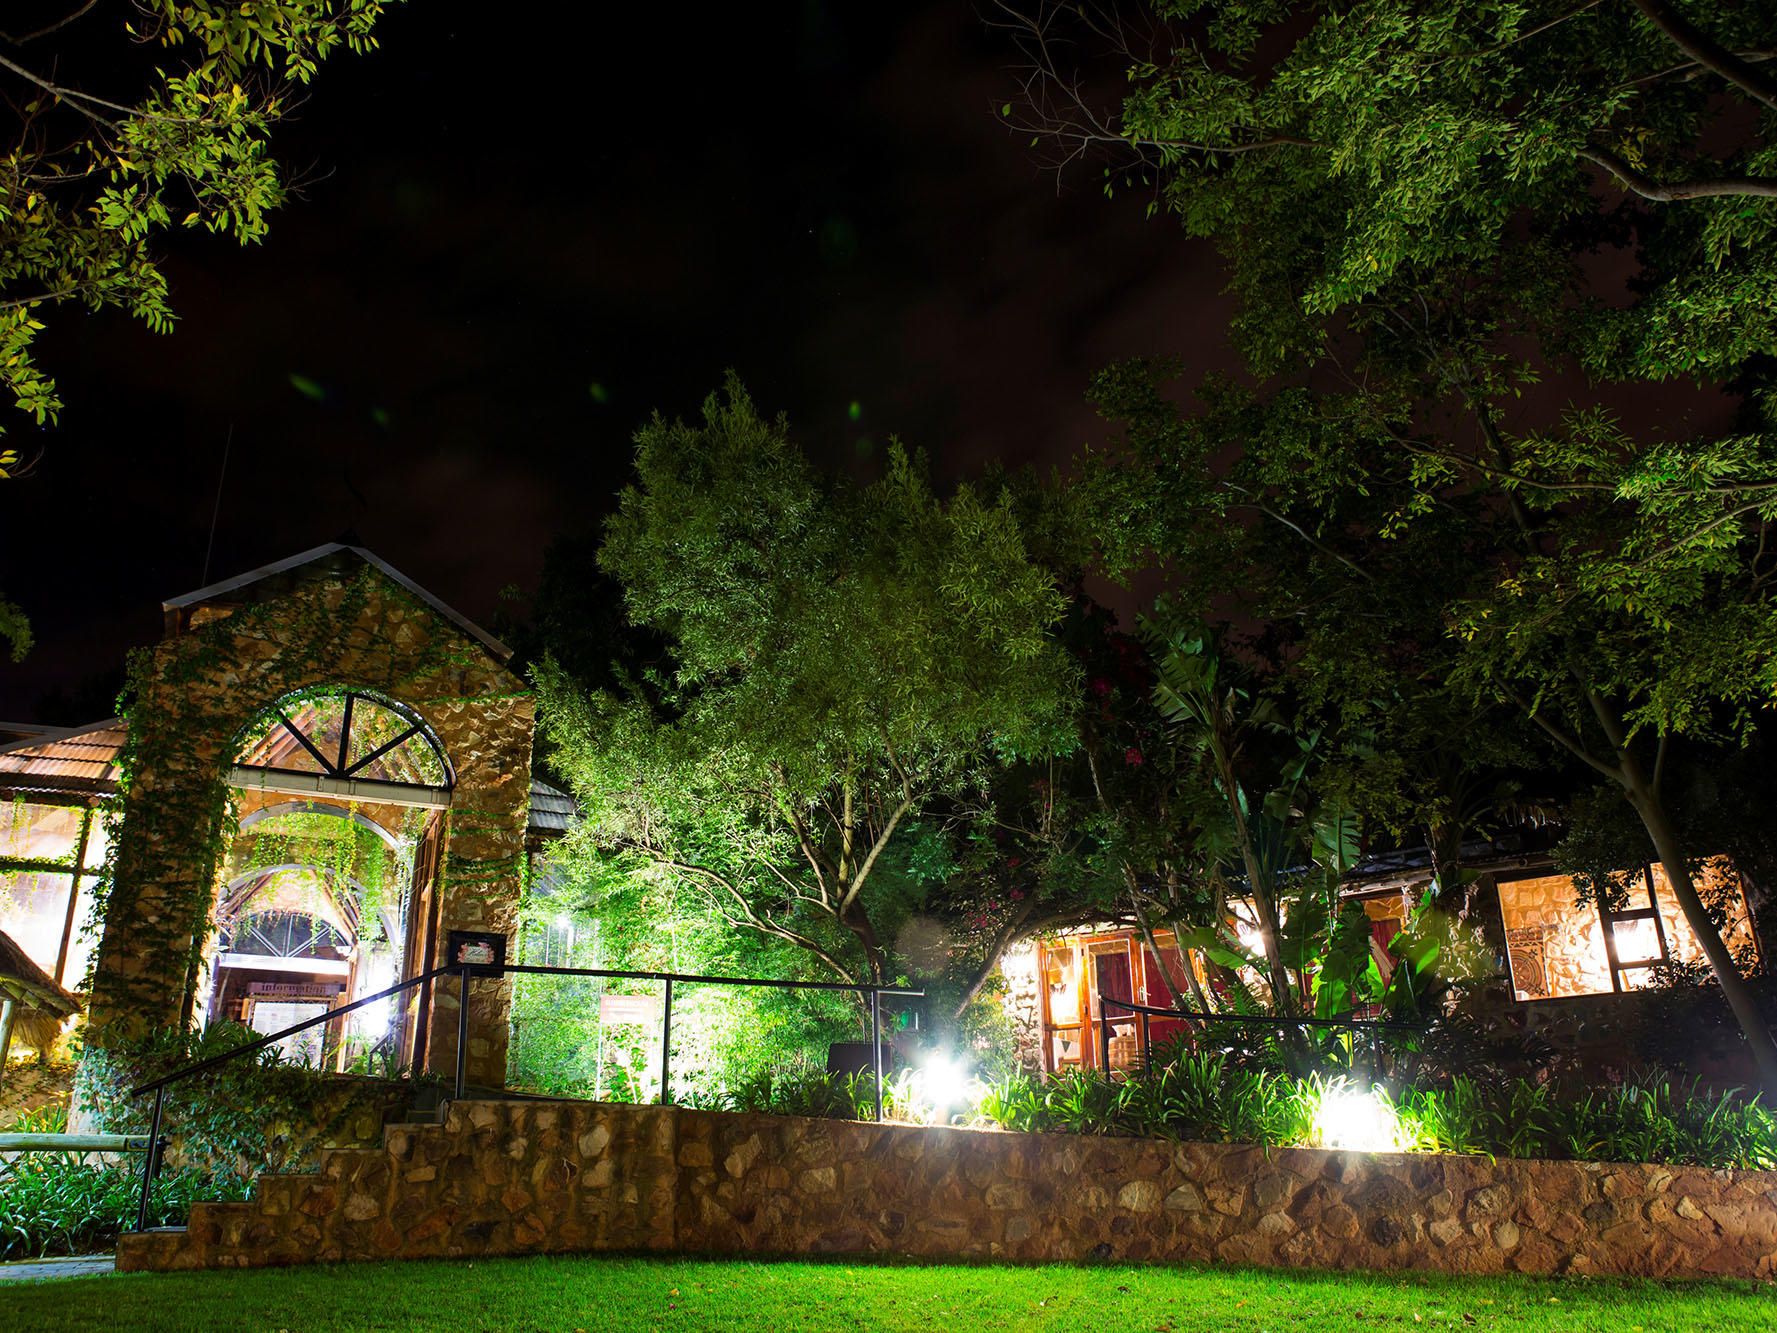 Landscape of the hotel by night